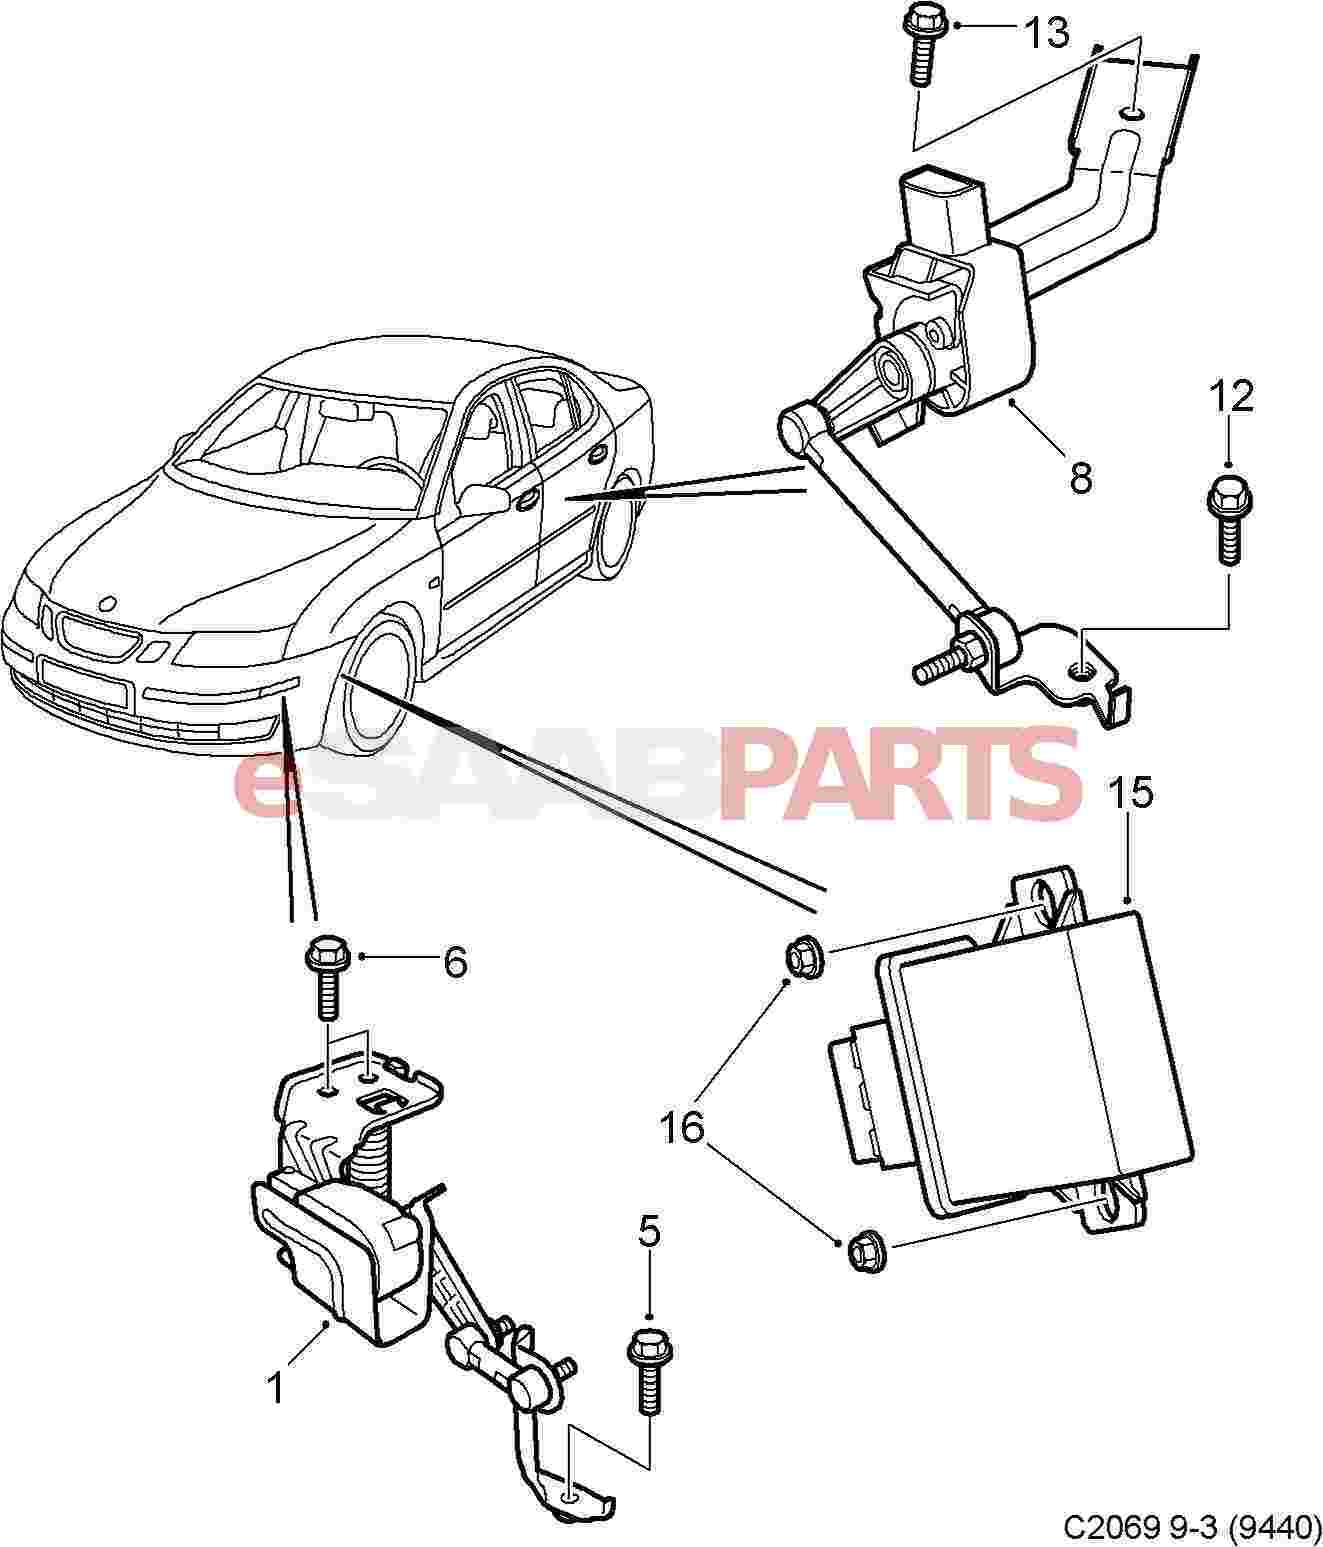 eSaabParts.com - Saab 9-3 (9440) > Electrical Parts > Headlights > Leveling  Sensors - Headlight